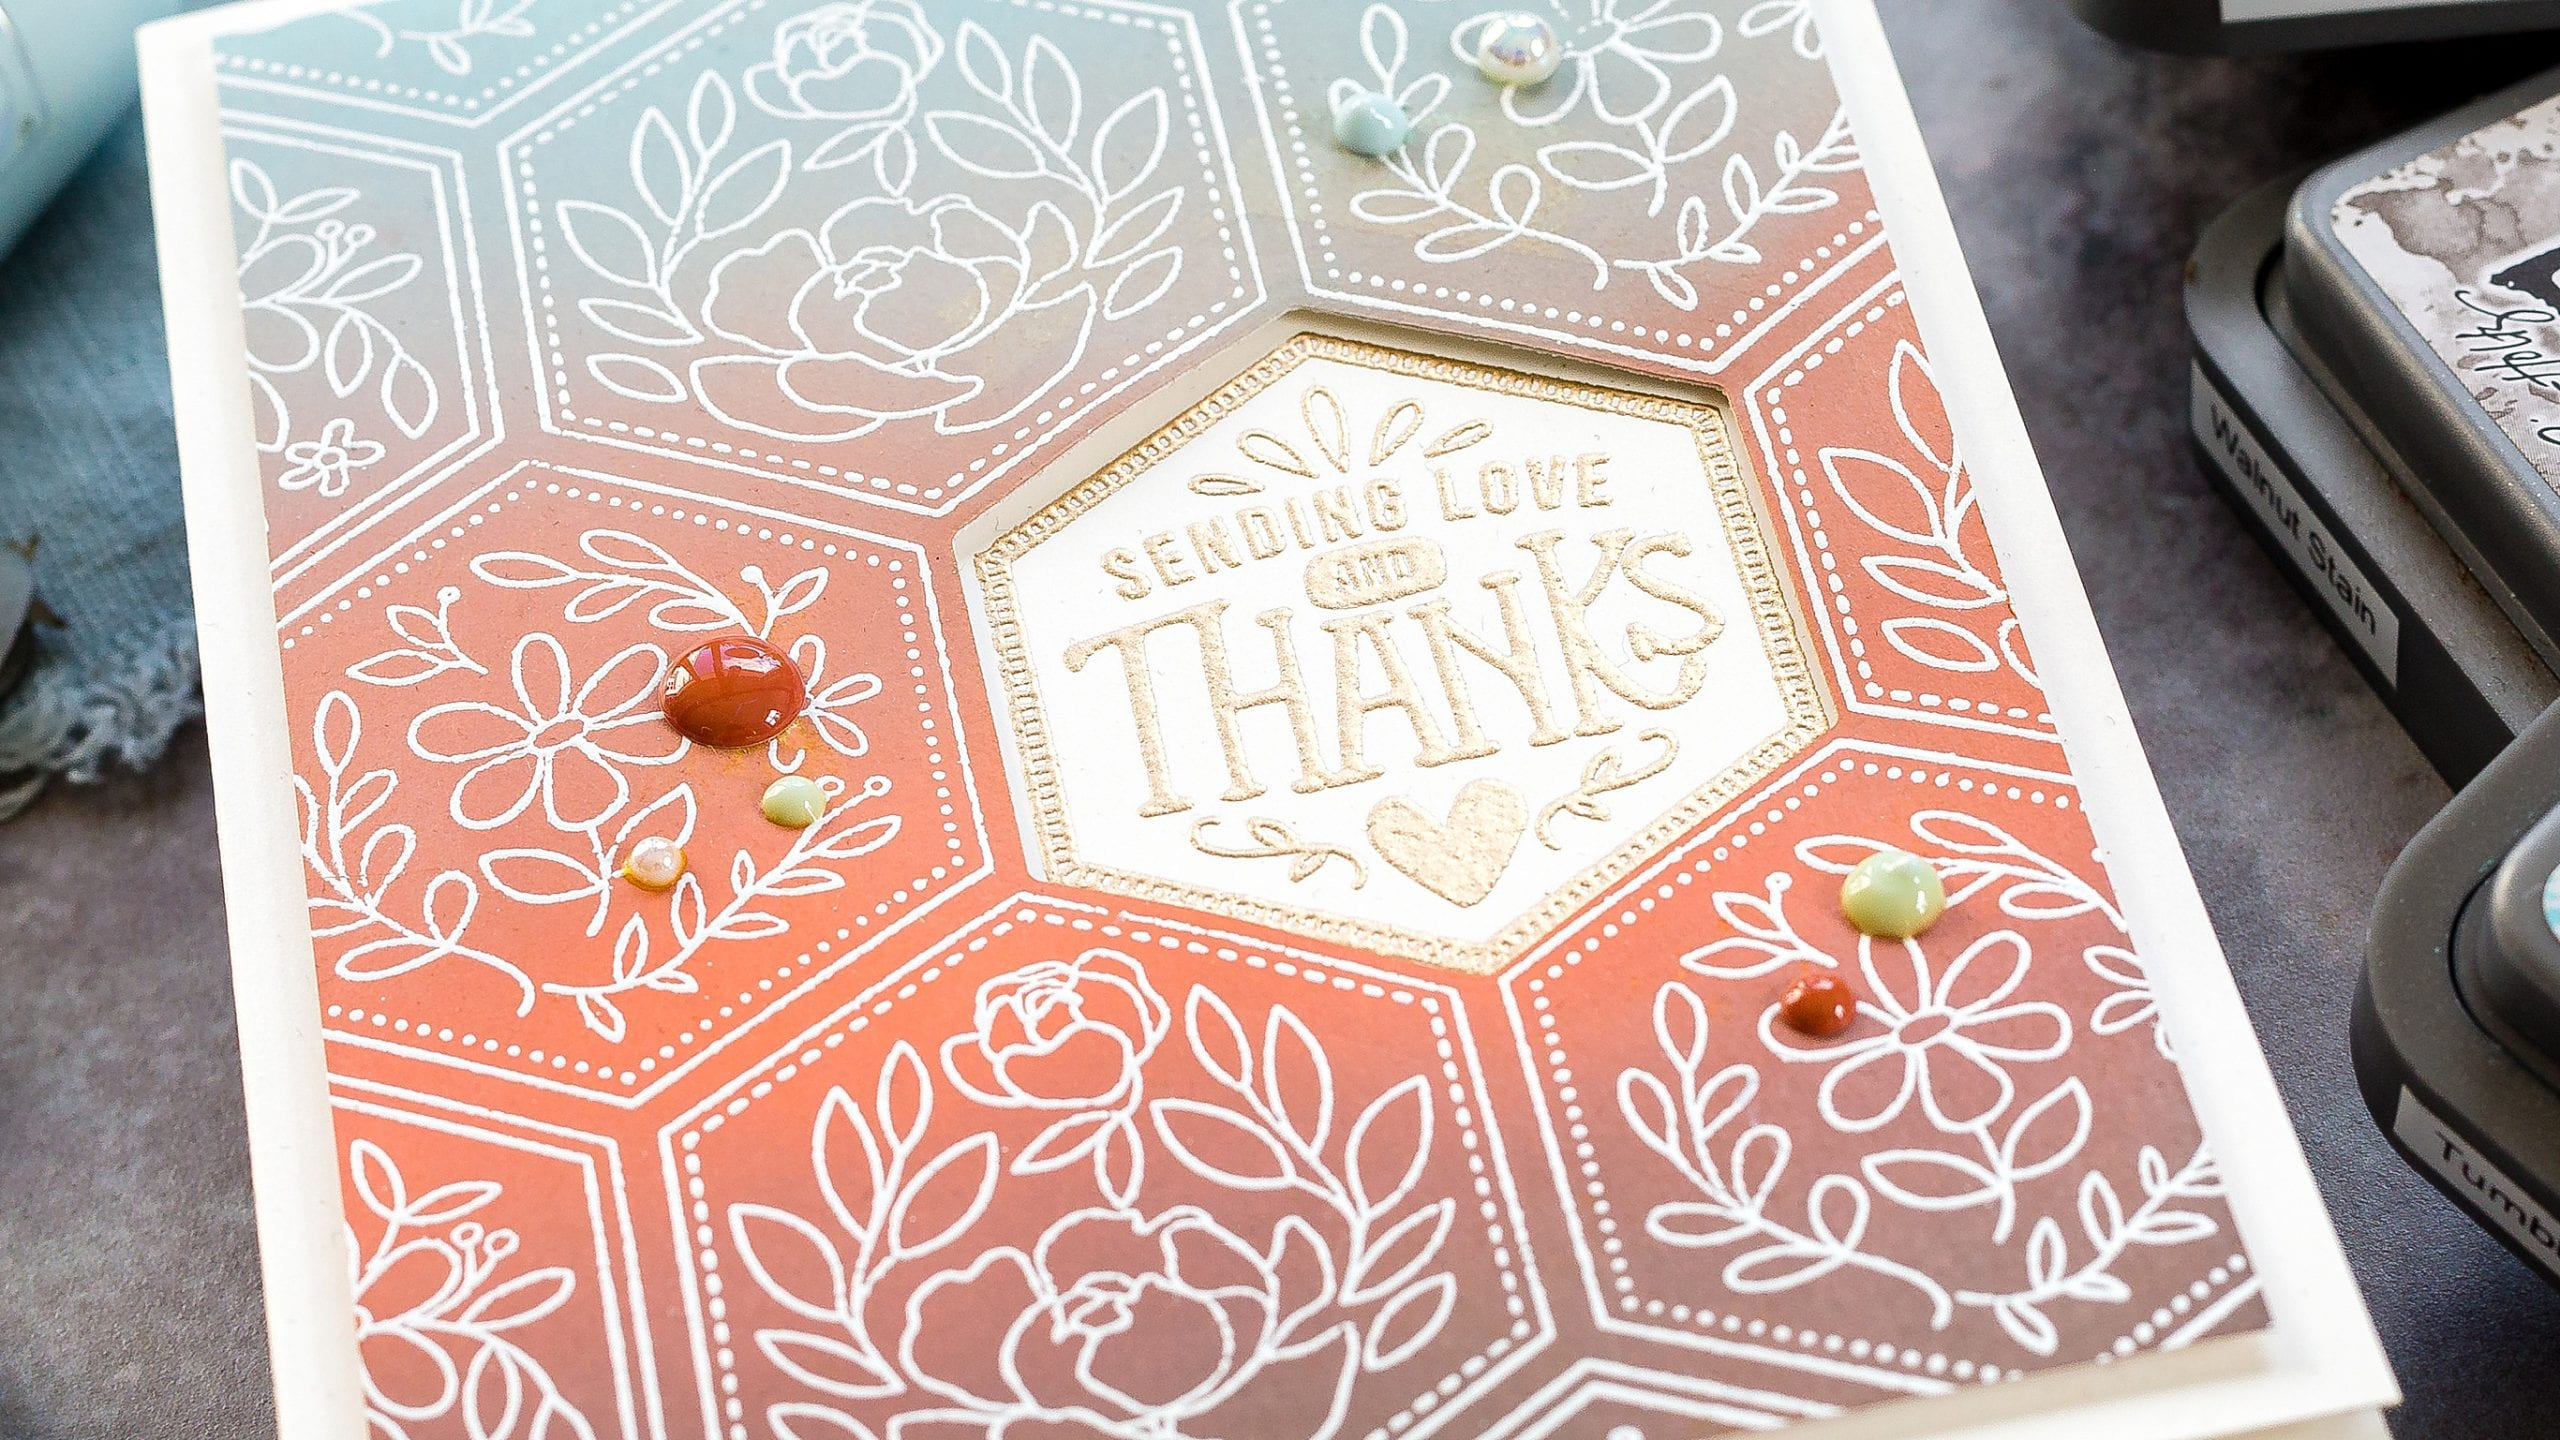 Distress Oxide blending tutorial. Handmade hexagon thank you card by Debby Hughes using supplies from Simon Says Stamp #homemade #tutorial #inkblending